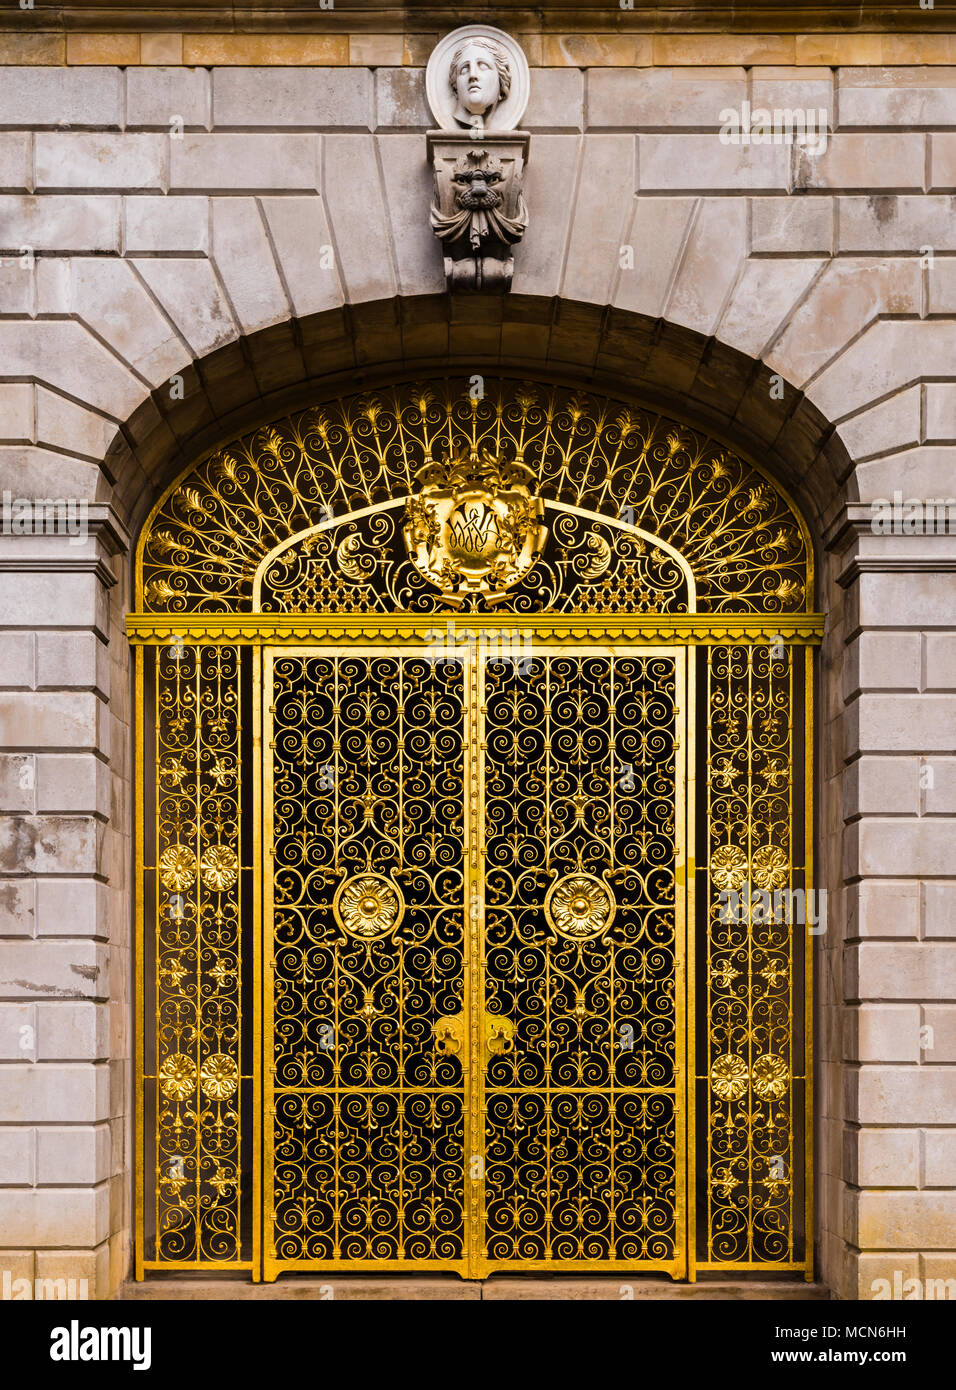 Golden gates at Cliveden House, Buckinghamshire, UK - Stock Image